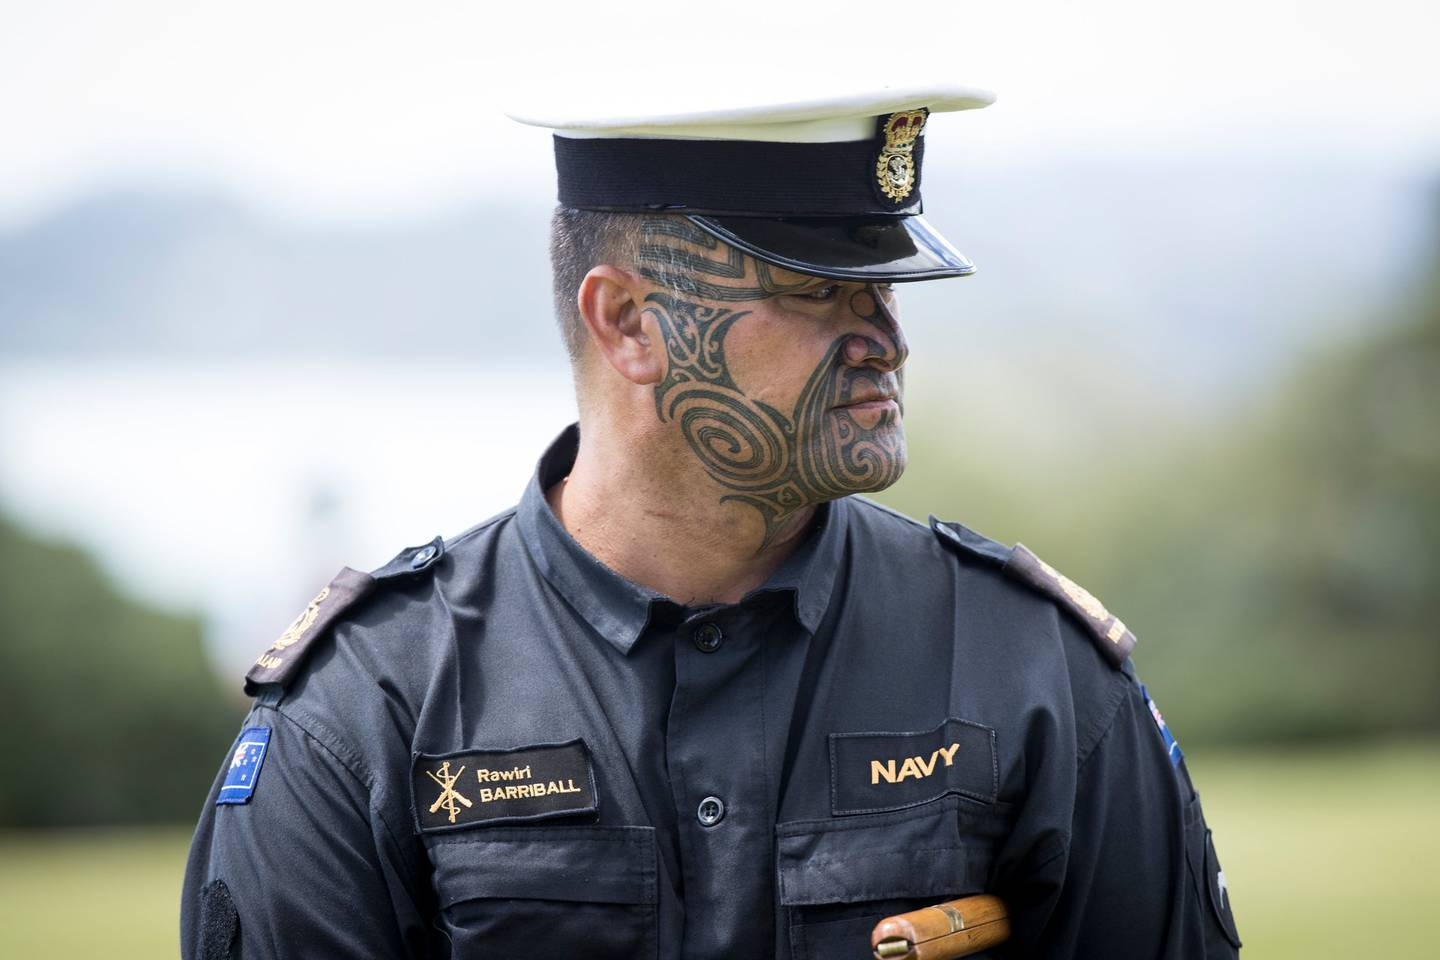 Navy officer Rawiri Barriball was the  first to get clearance from Navy to have a moko.